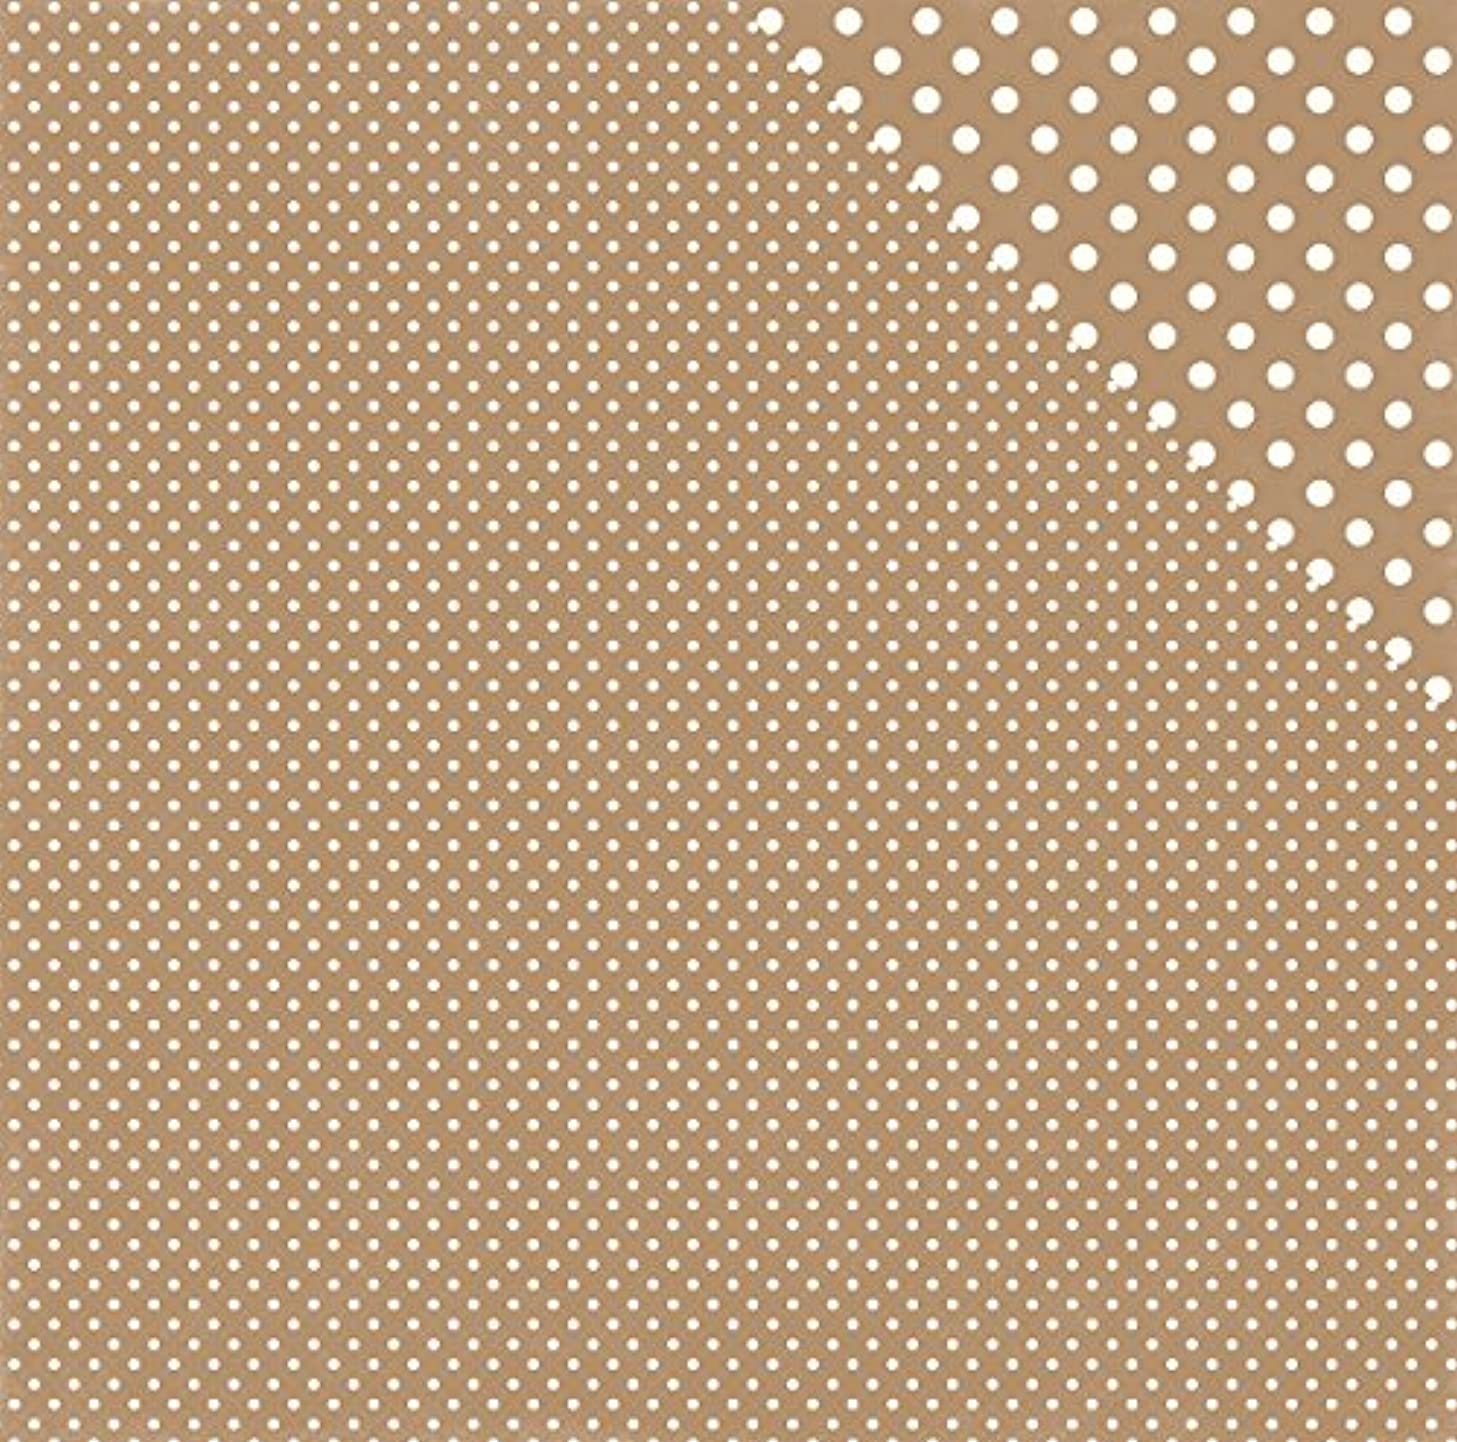 Echo Park Paper DS16026 Travel Dots & Stripes Double-Sided Cardstock (25 Sheets Per Pack), 12